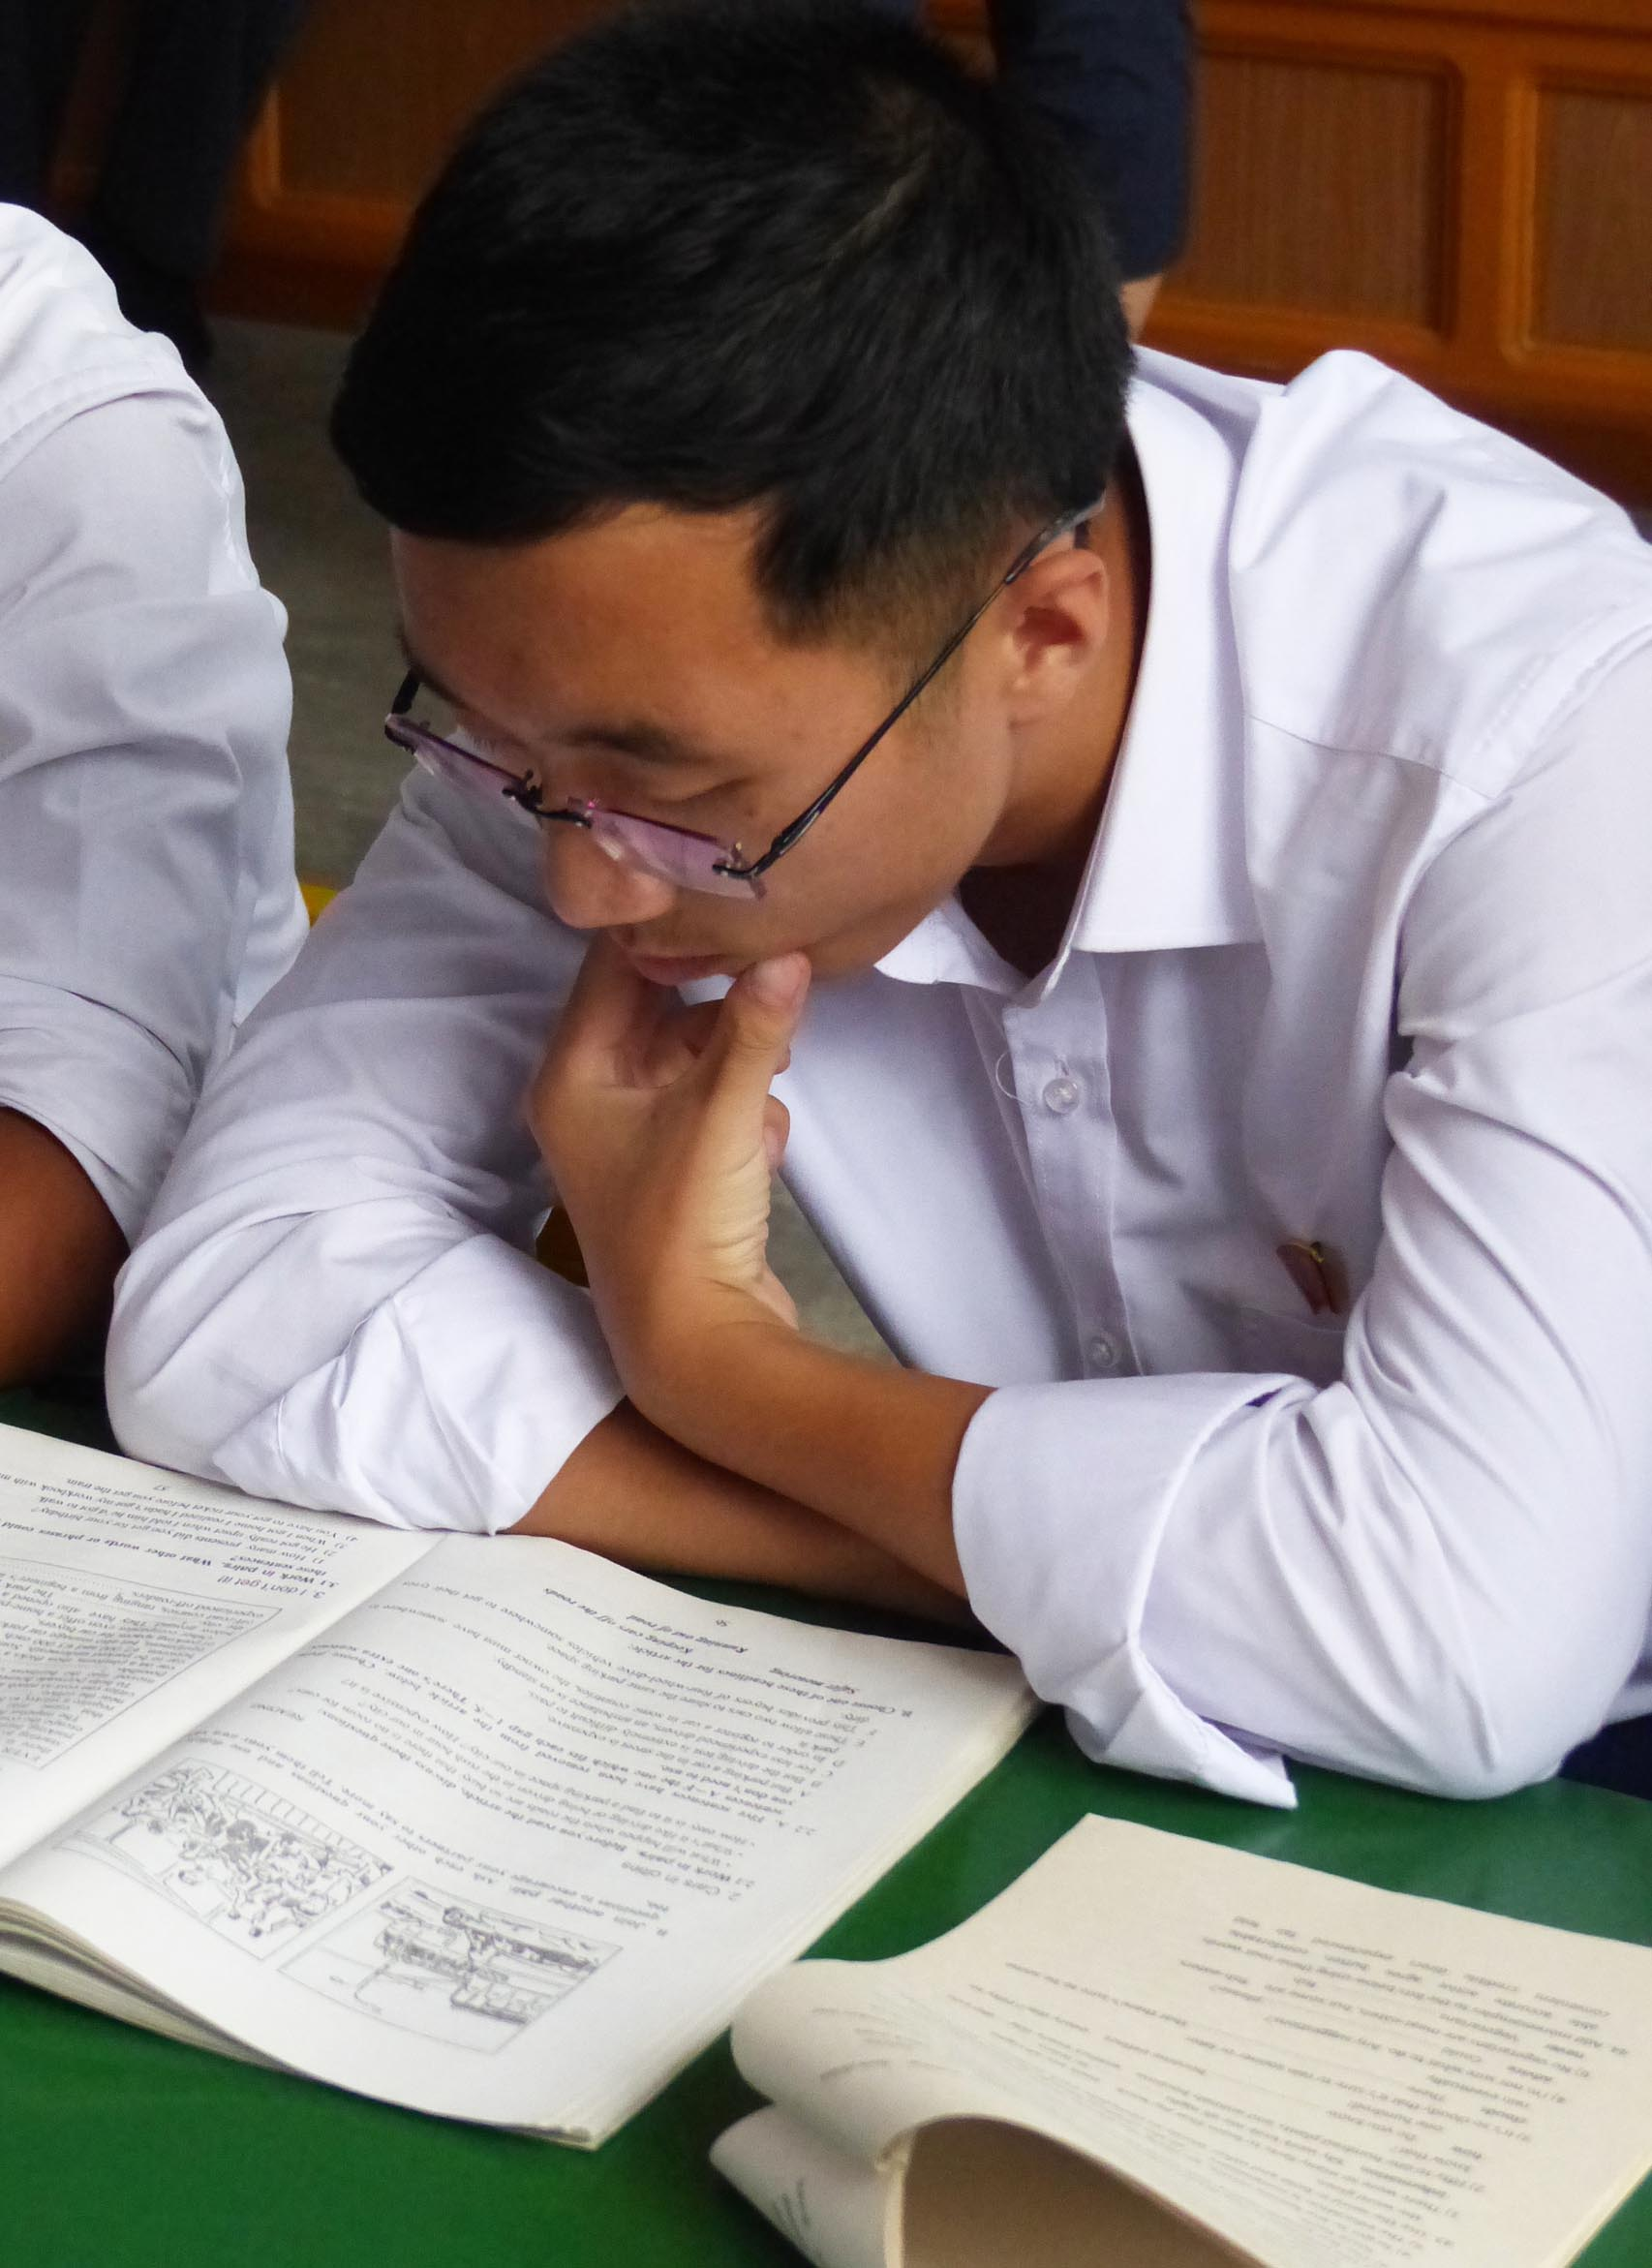 Boy in white shirt reading text book